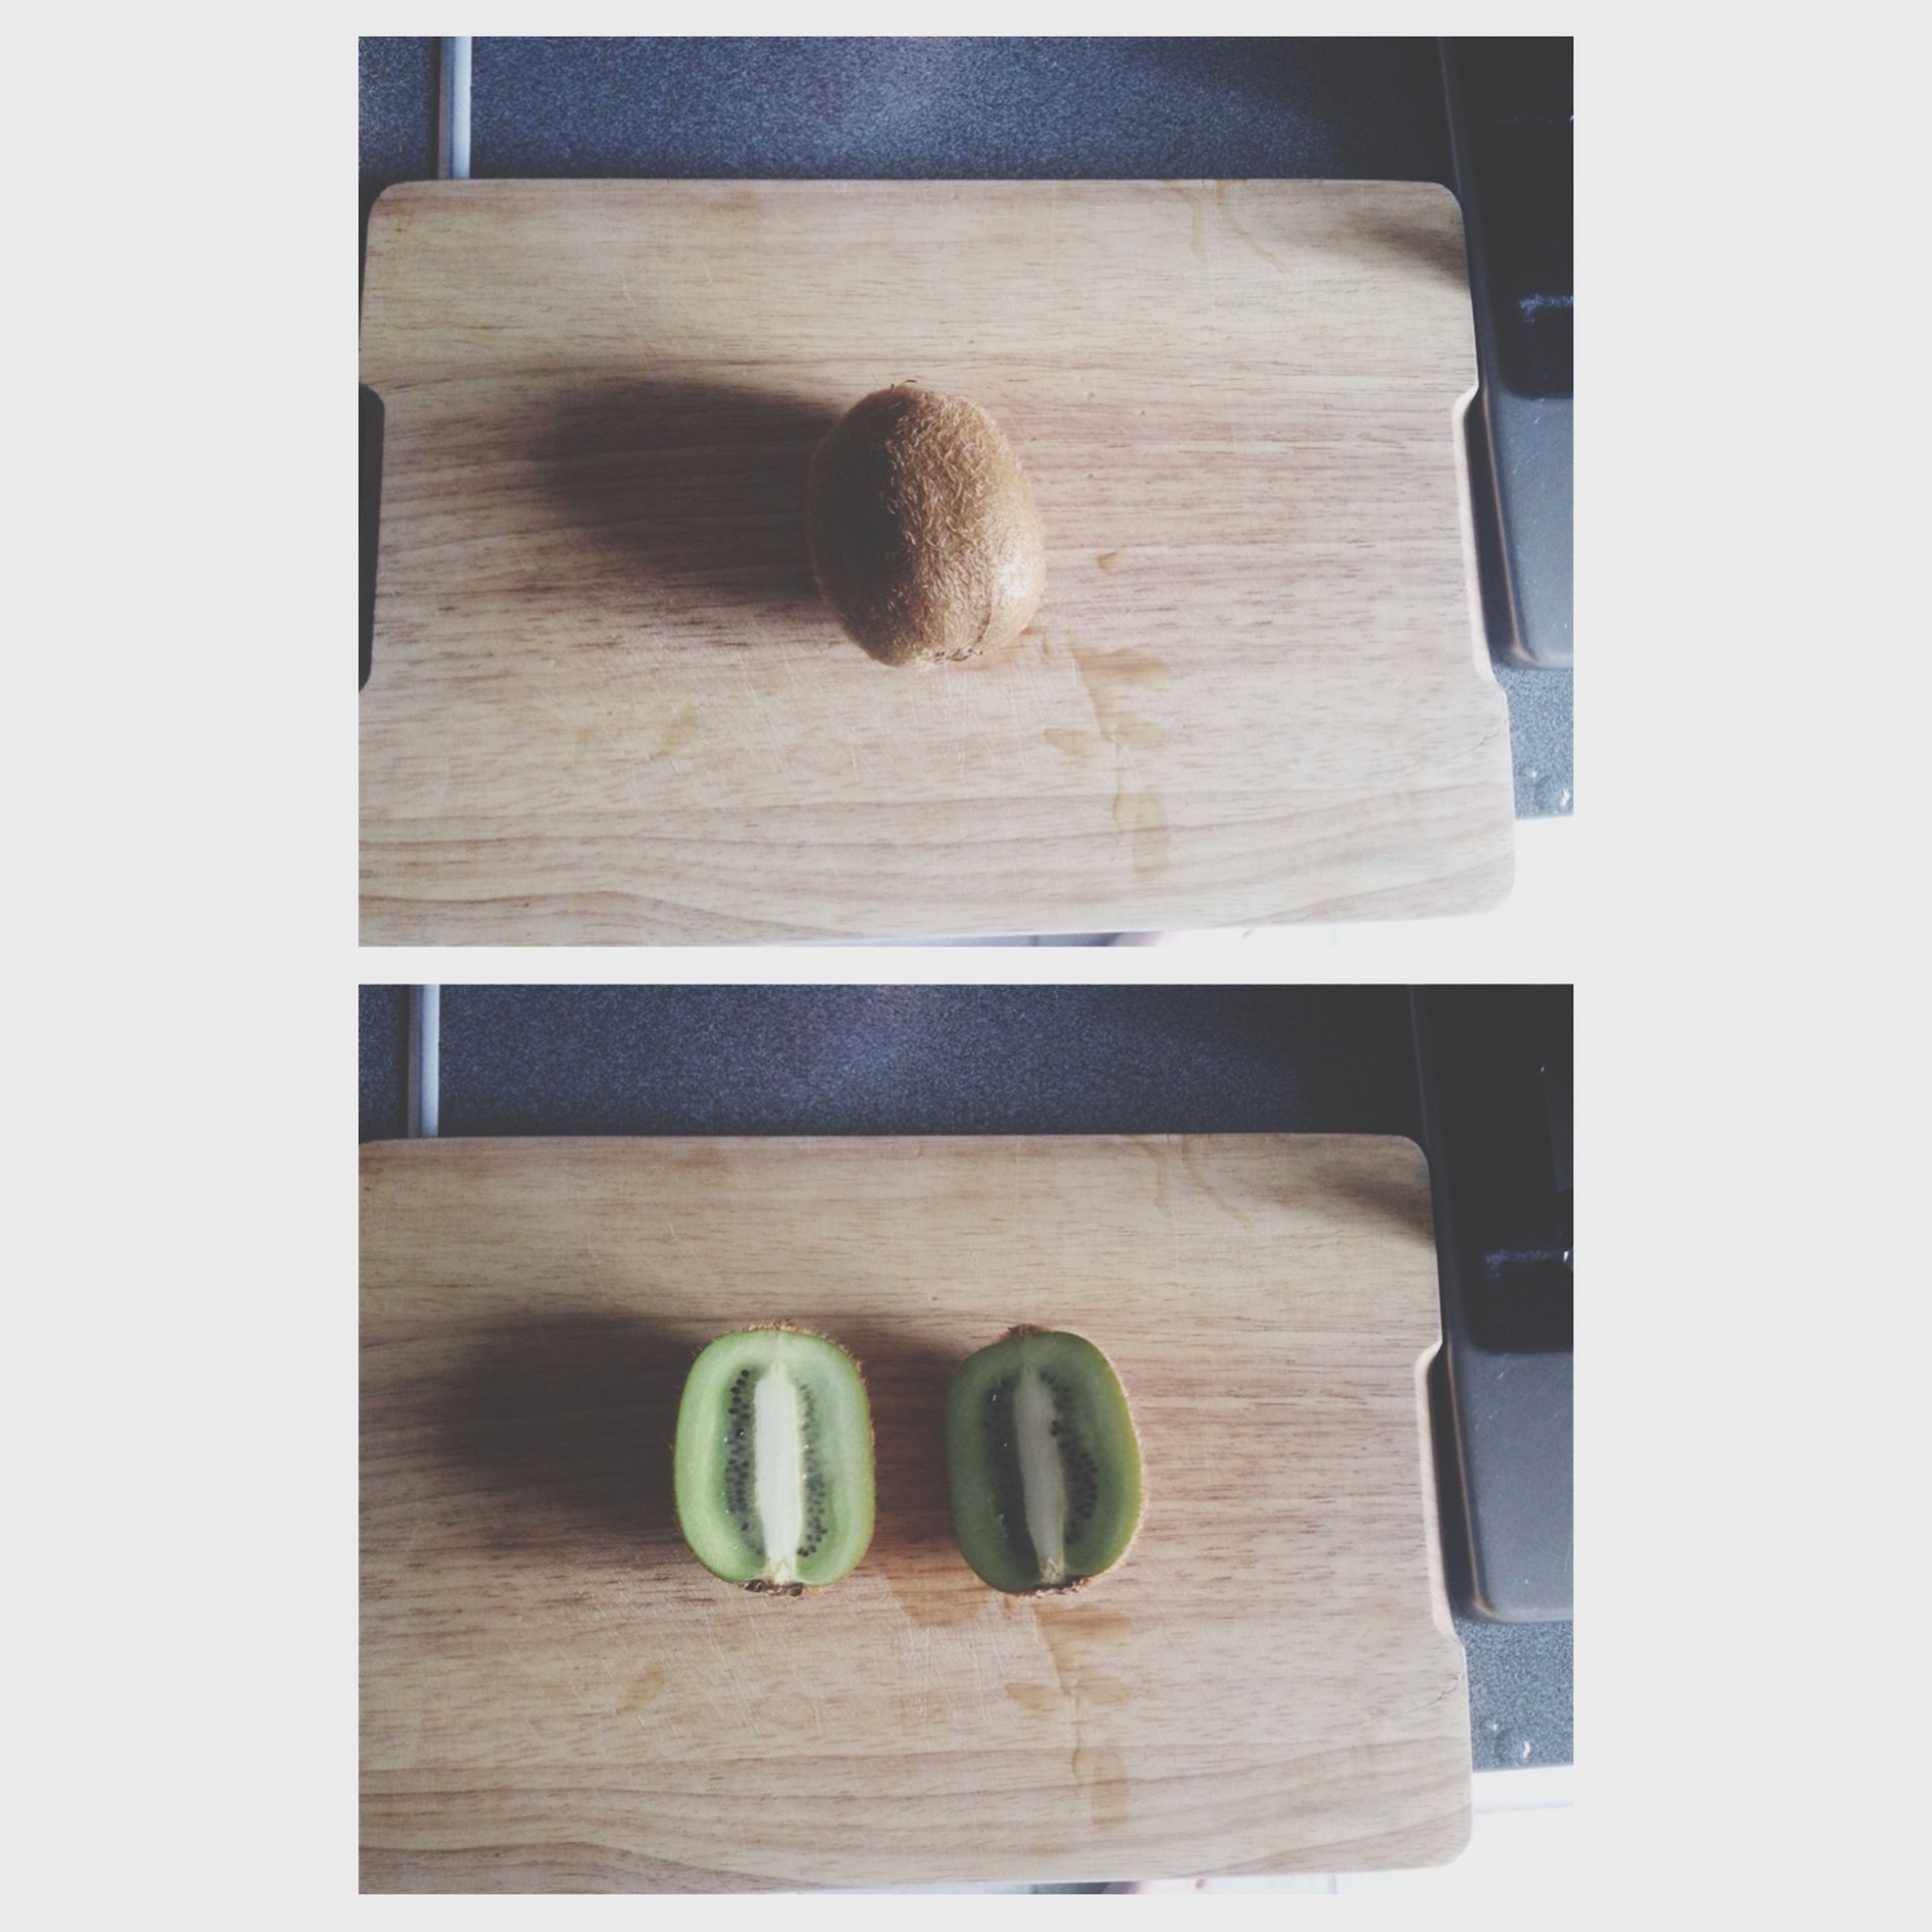 transfer print, auto post production filter, wood - material, food and drink, indoors, food, table, still life, wooden, wood, healthy eating, freshness, close-up, high angle view, no people, directly above, cutting board, vegetable, brown, fruit